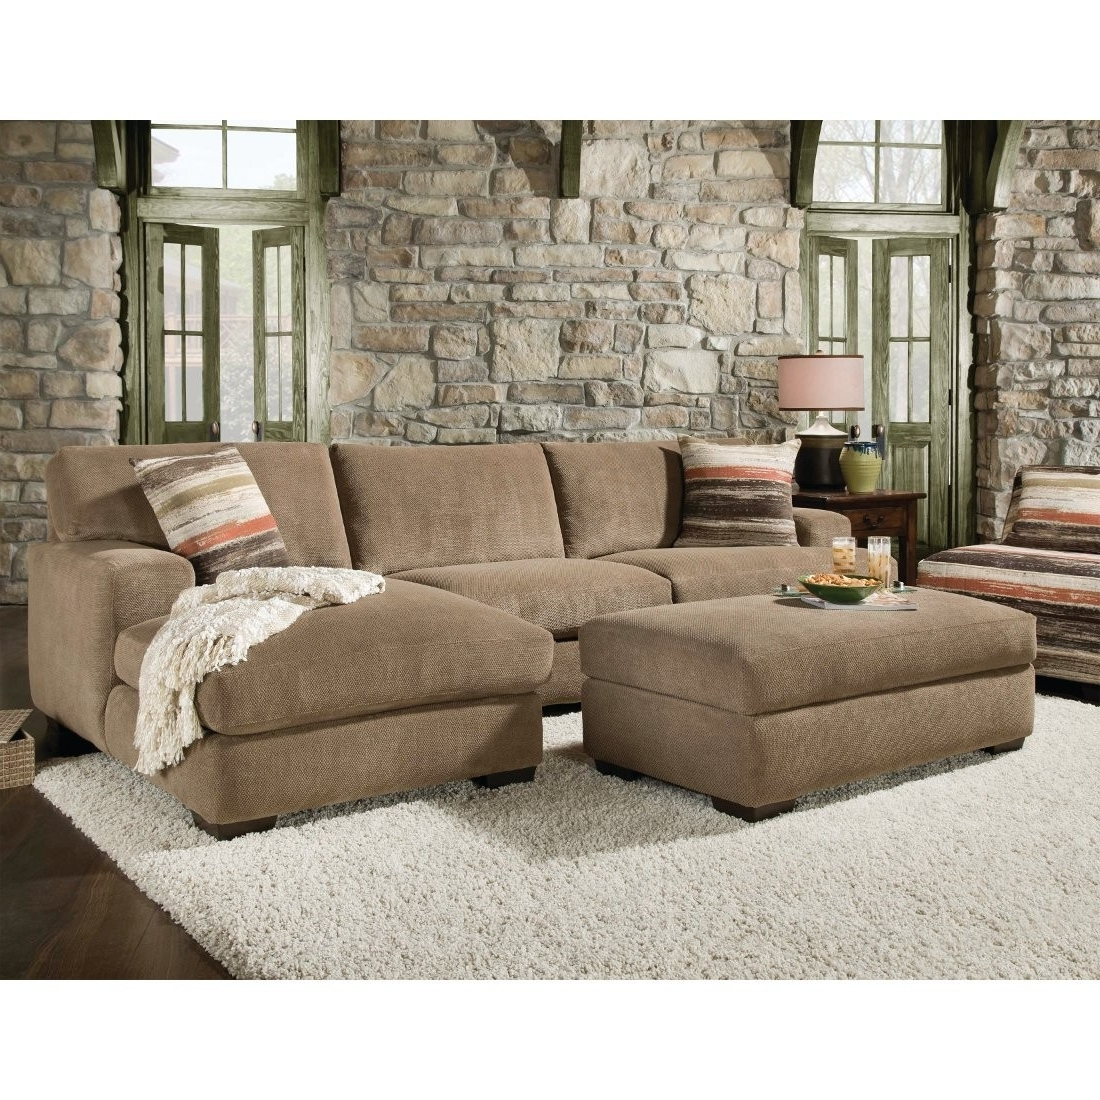 Latest Beautiful Sectional Sofa With Chaise And Ottoman Pictures For Sofas With Ottoman (View 7 of 20)